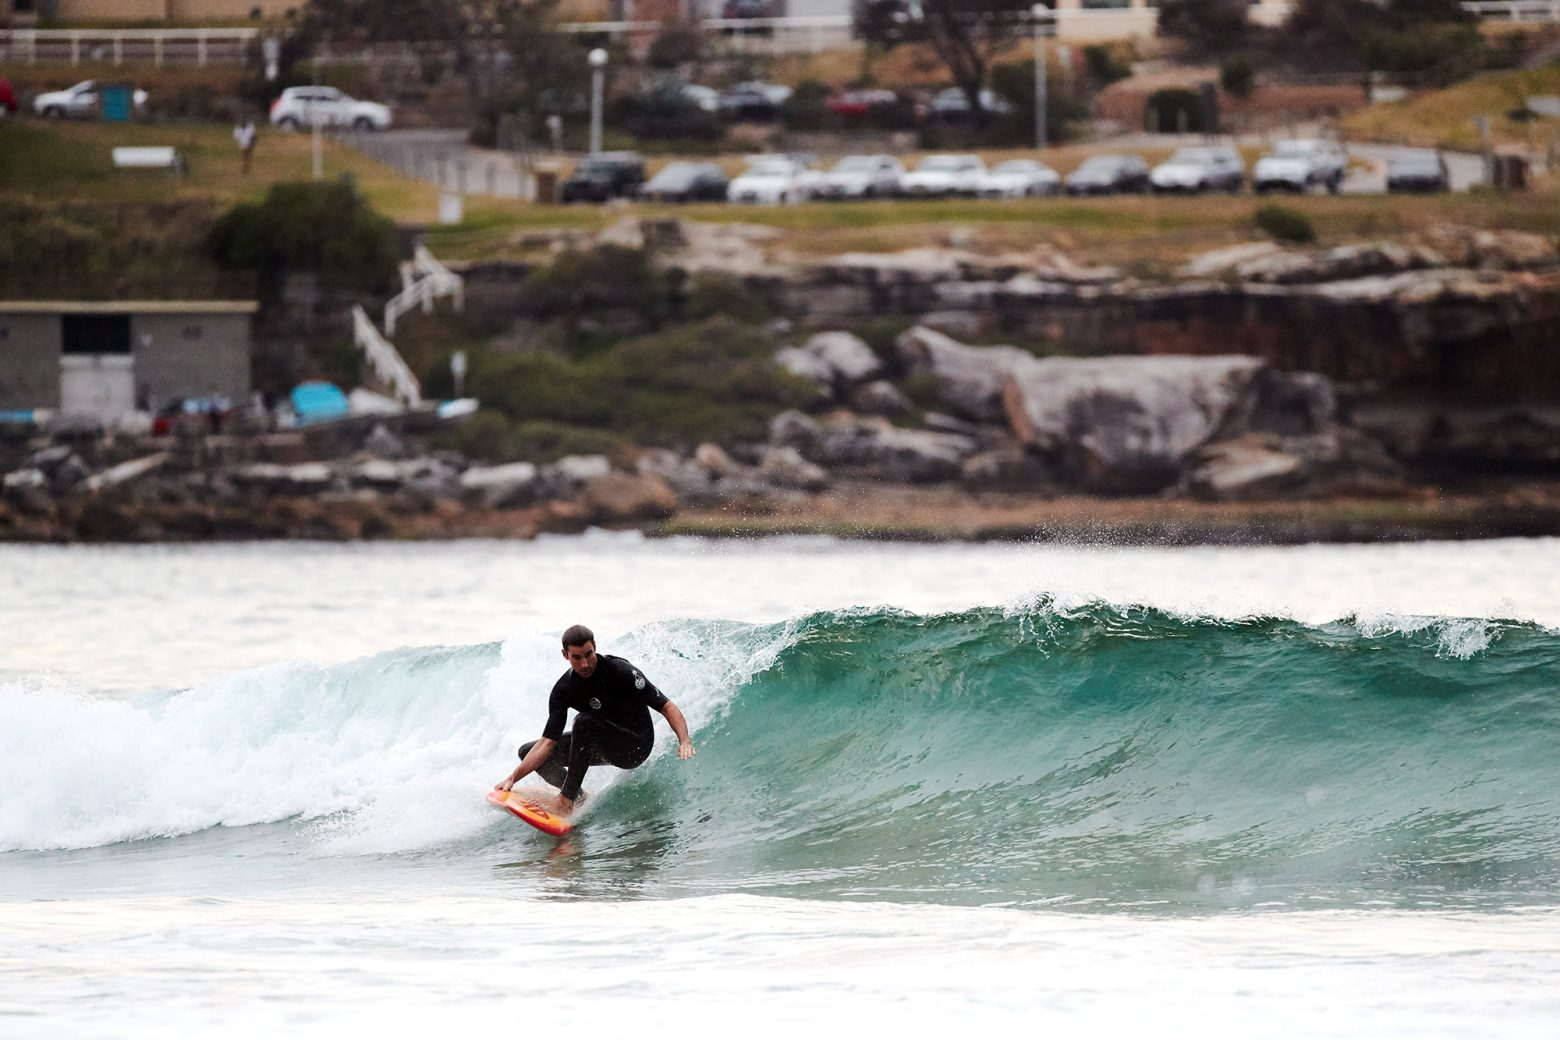 Chris Little training for a wild card at Pipe